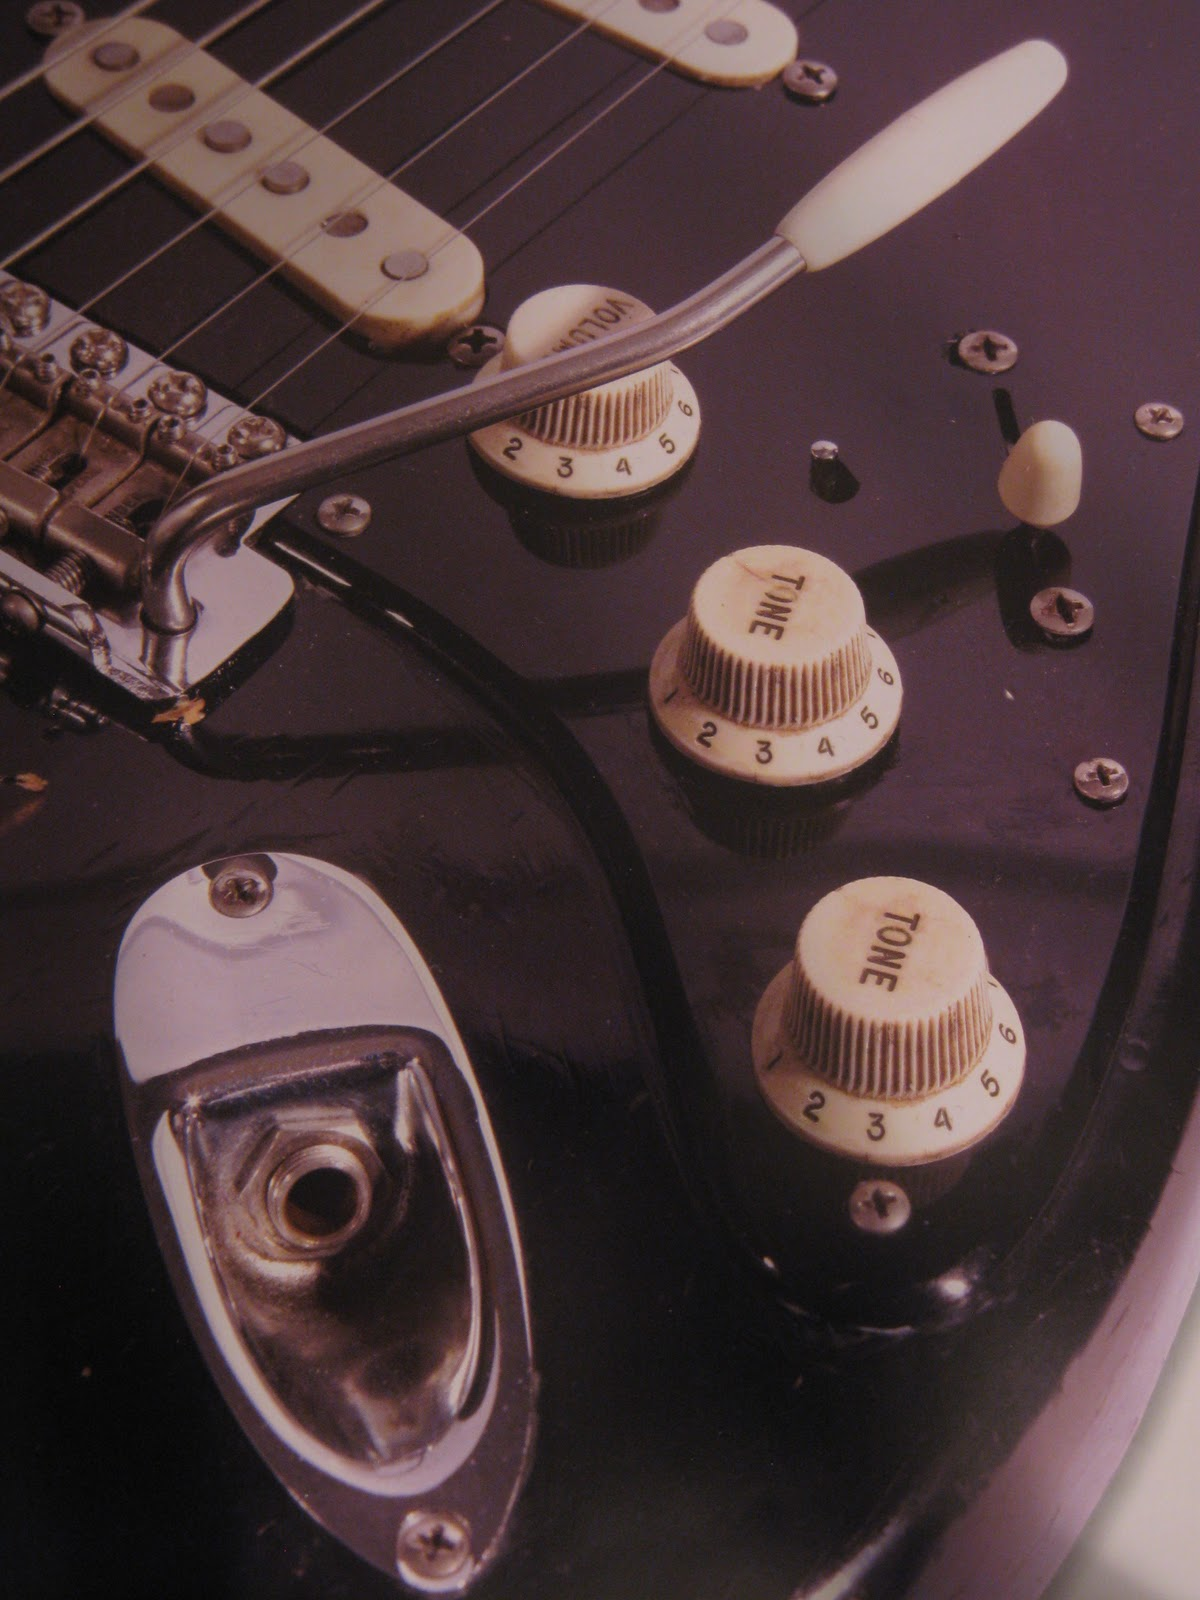 Modified Suhr Hss Help Wiring 7 Way Switch No Auto Split The Gear Page Is Fender 5way That Found On Some Of Their Guitars Img